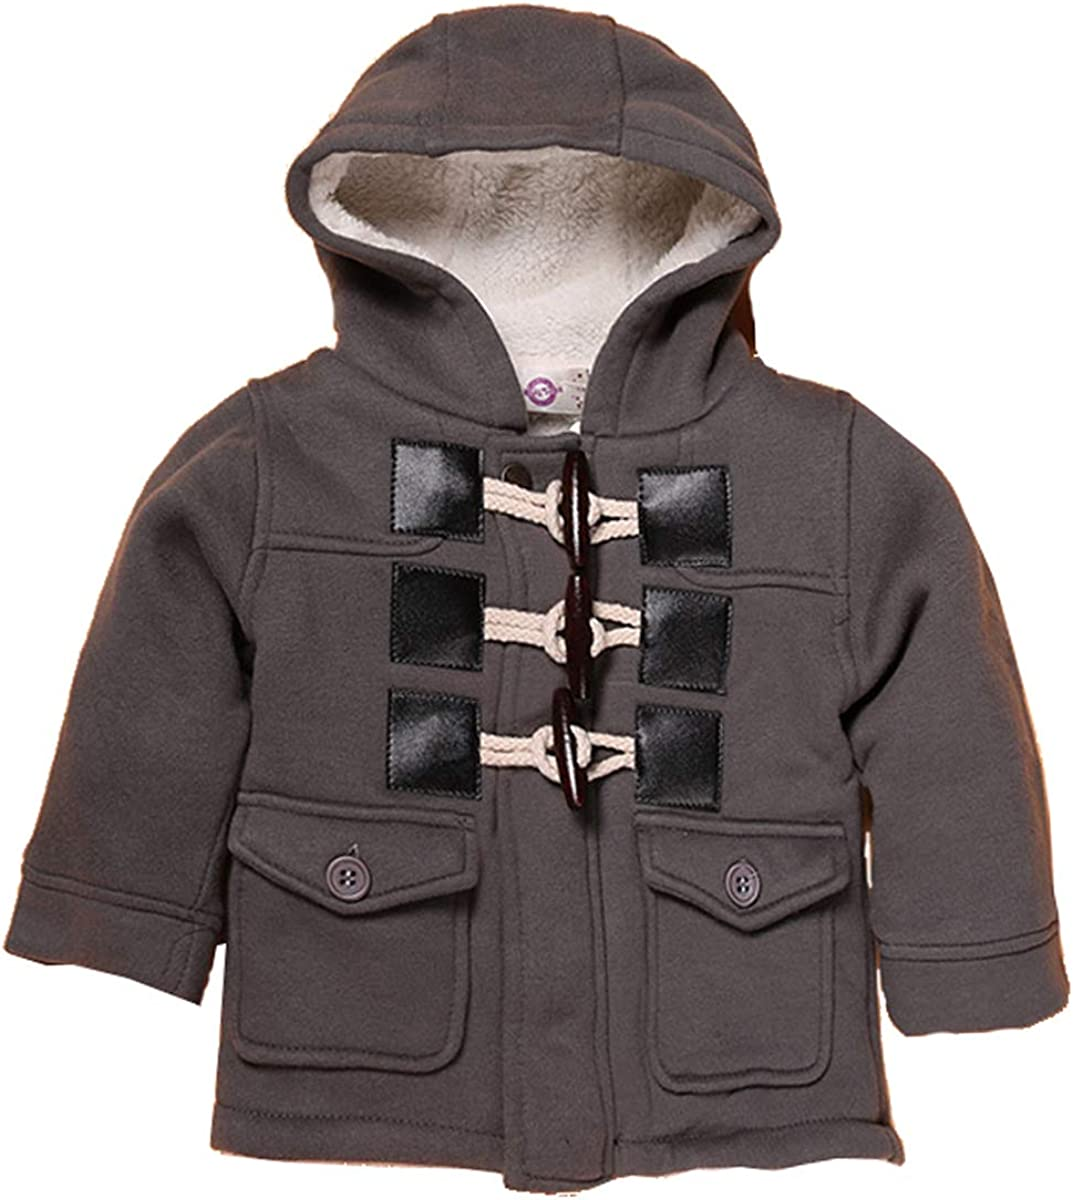 Qinni-shop Baby Toddler Little Boys Khaki Gray Fleece Hooded Duffle Coat Winter Cotton Jacket